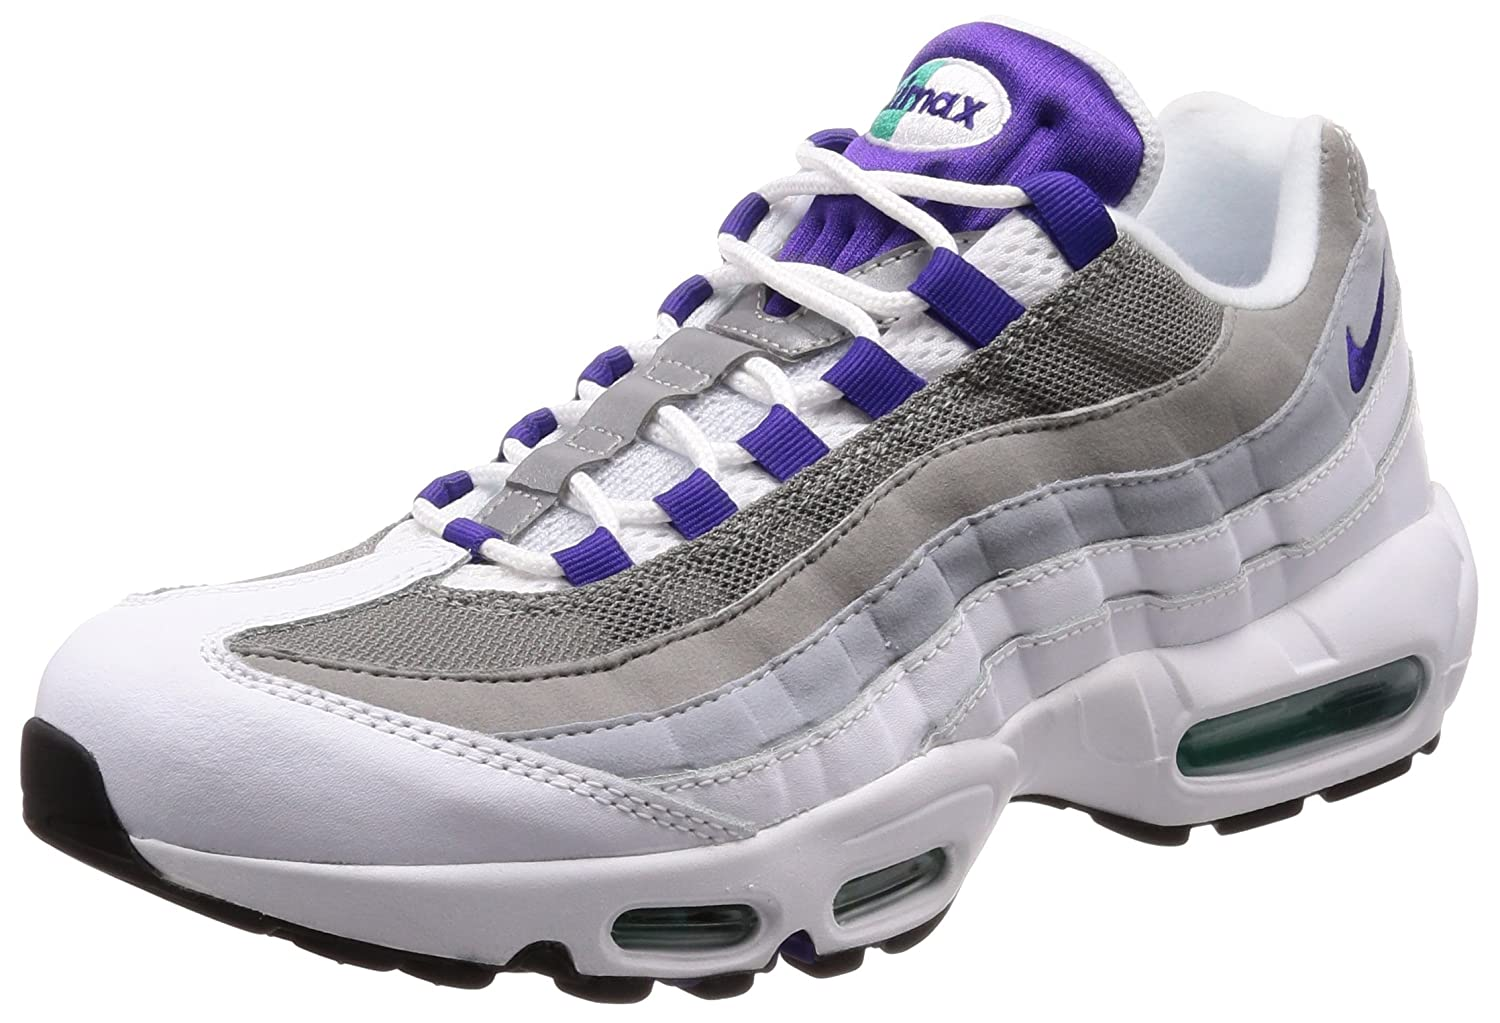 timeless design 5b9db 8957b Amazon.com   Nike Women s WMNS Air Max 95 Trainers, Multicolour  (White Emerald Green Wolf Grey Court Purple 109), 4.5 UK 38 EU   Road  Running